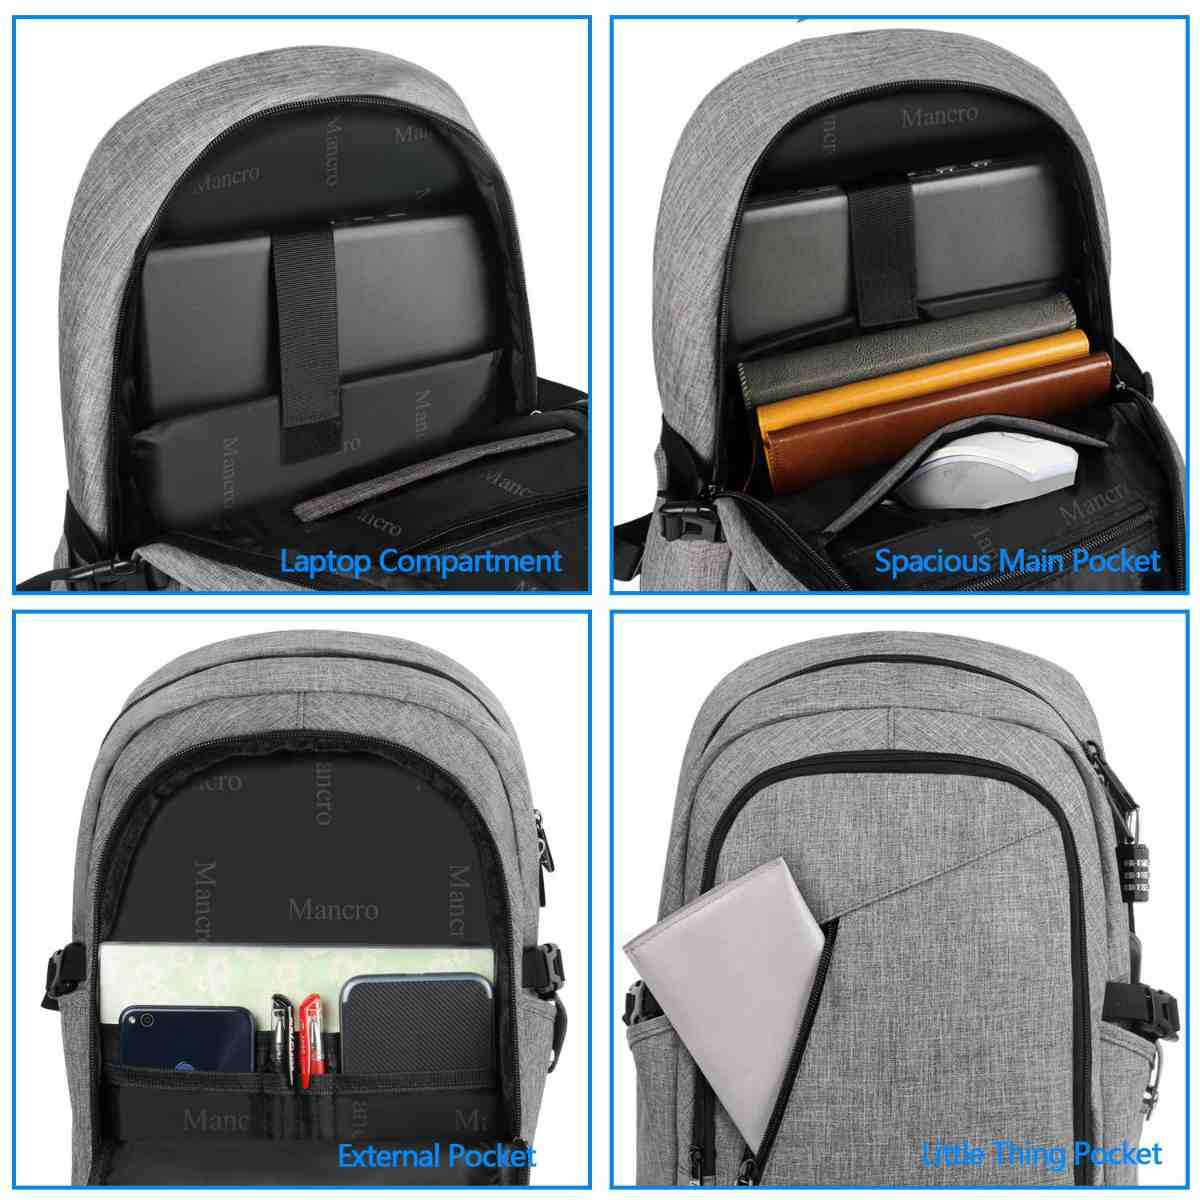 Features | The Mancro Travel Charging Backpack | Amazon Finds